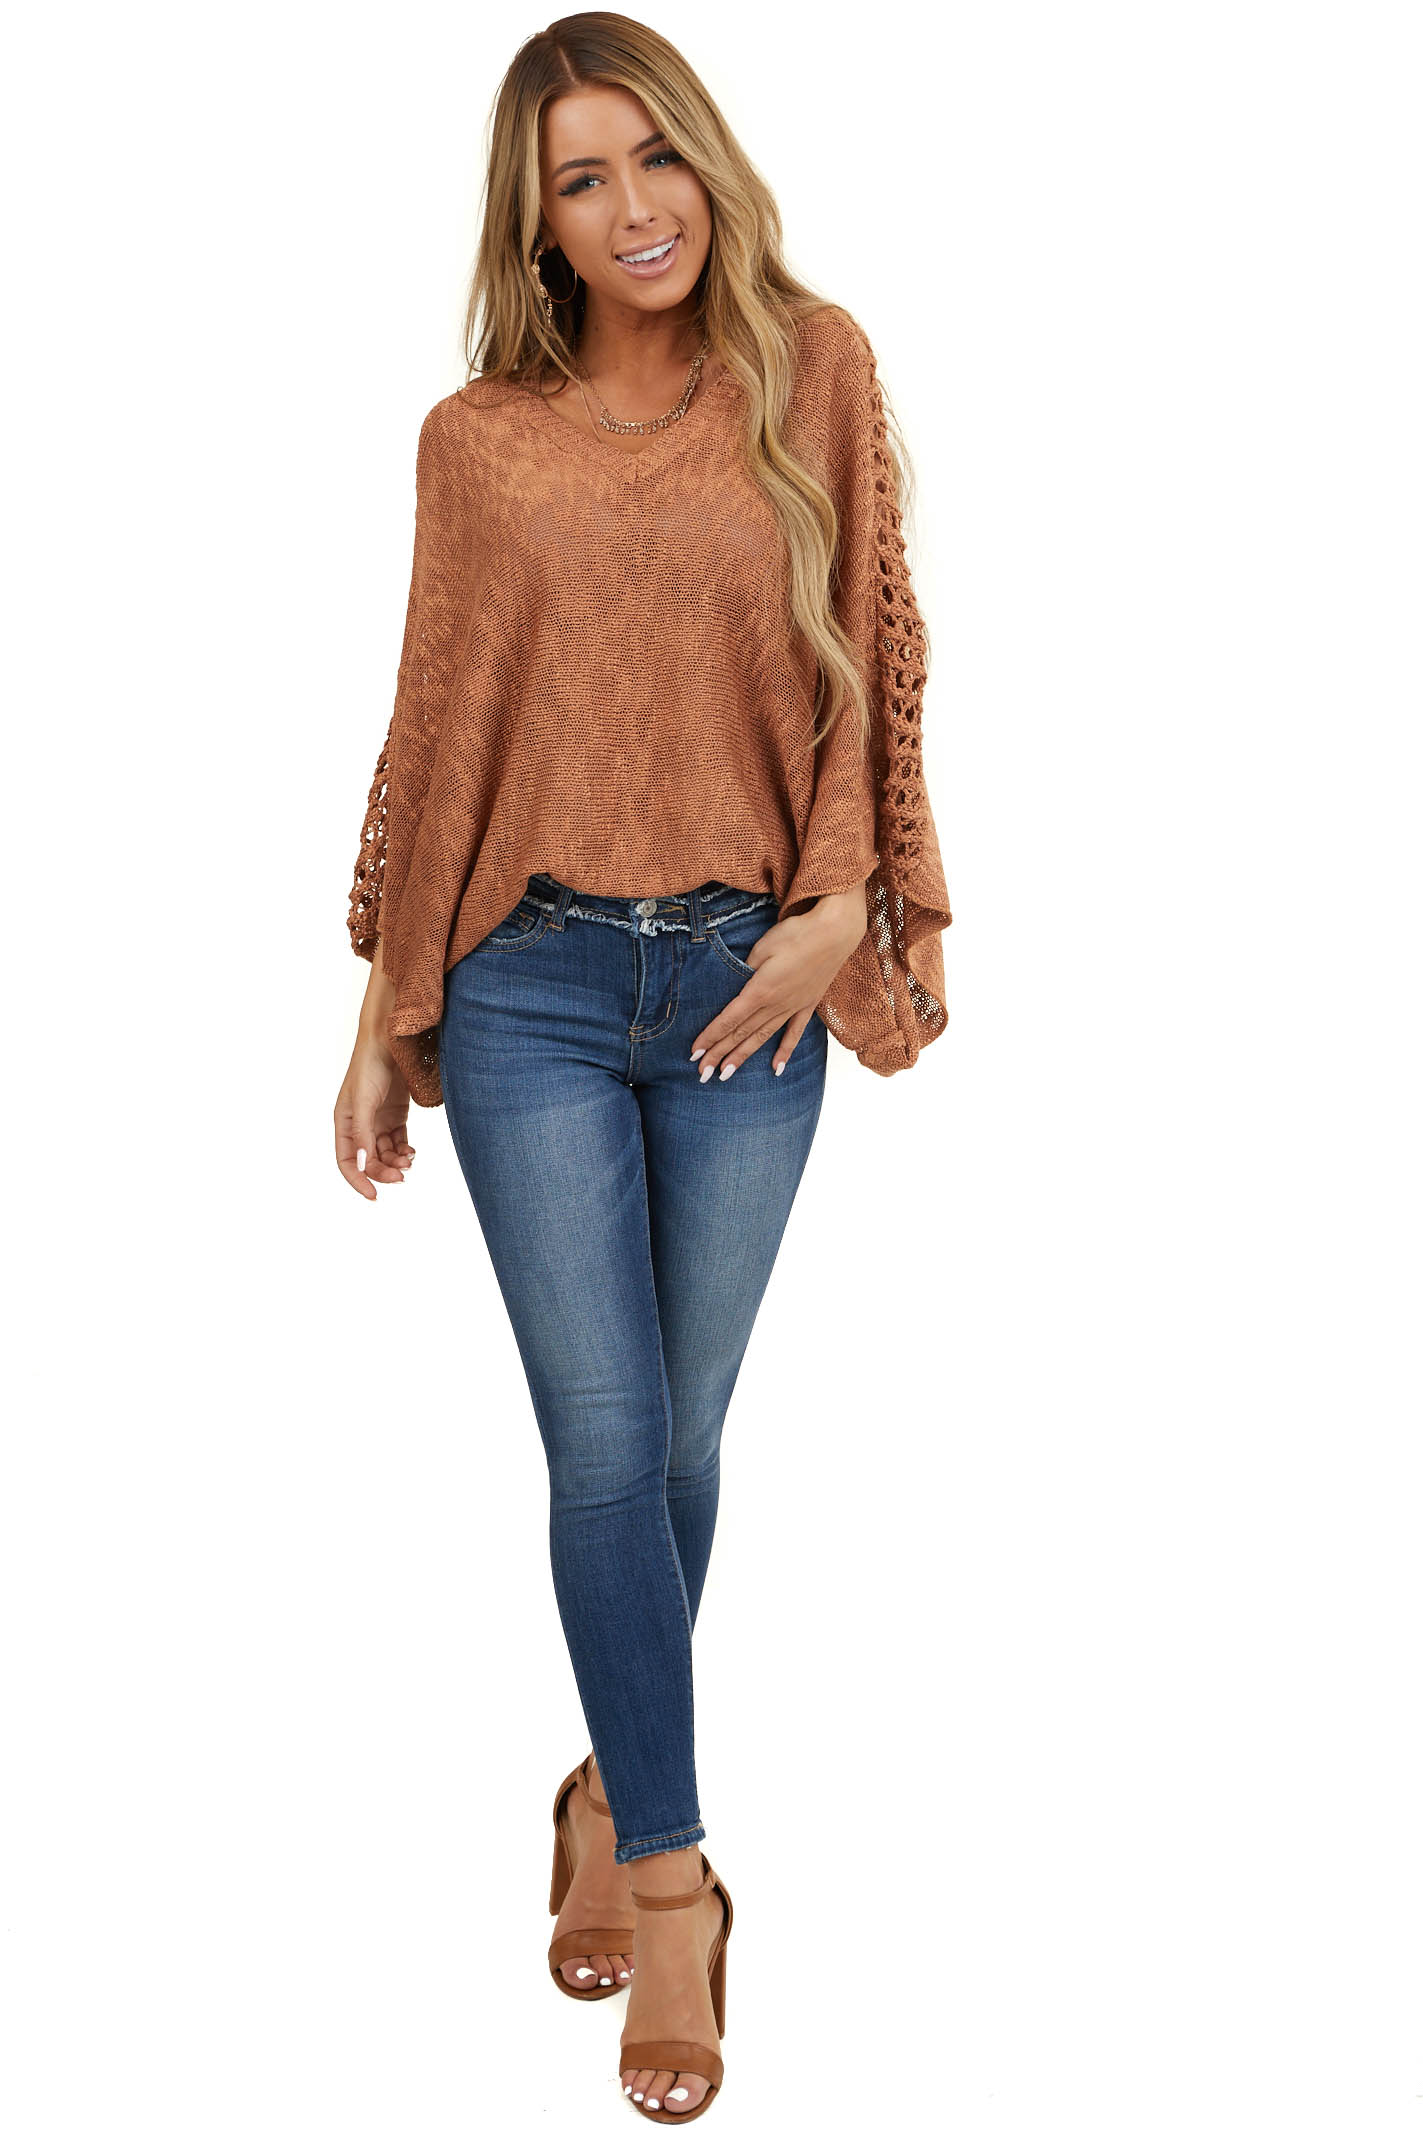 Terracotta Sweater with Kimono 3/4 Sleeves and V Neckline